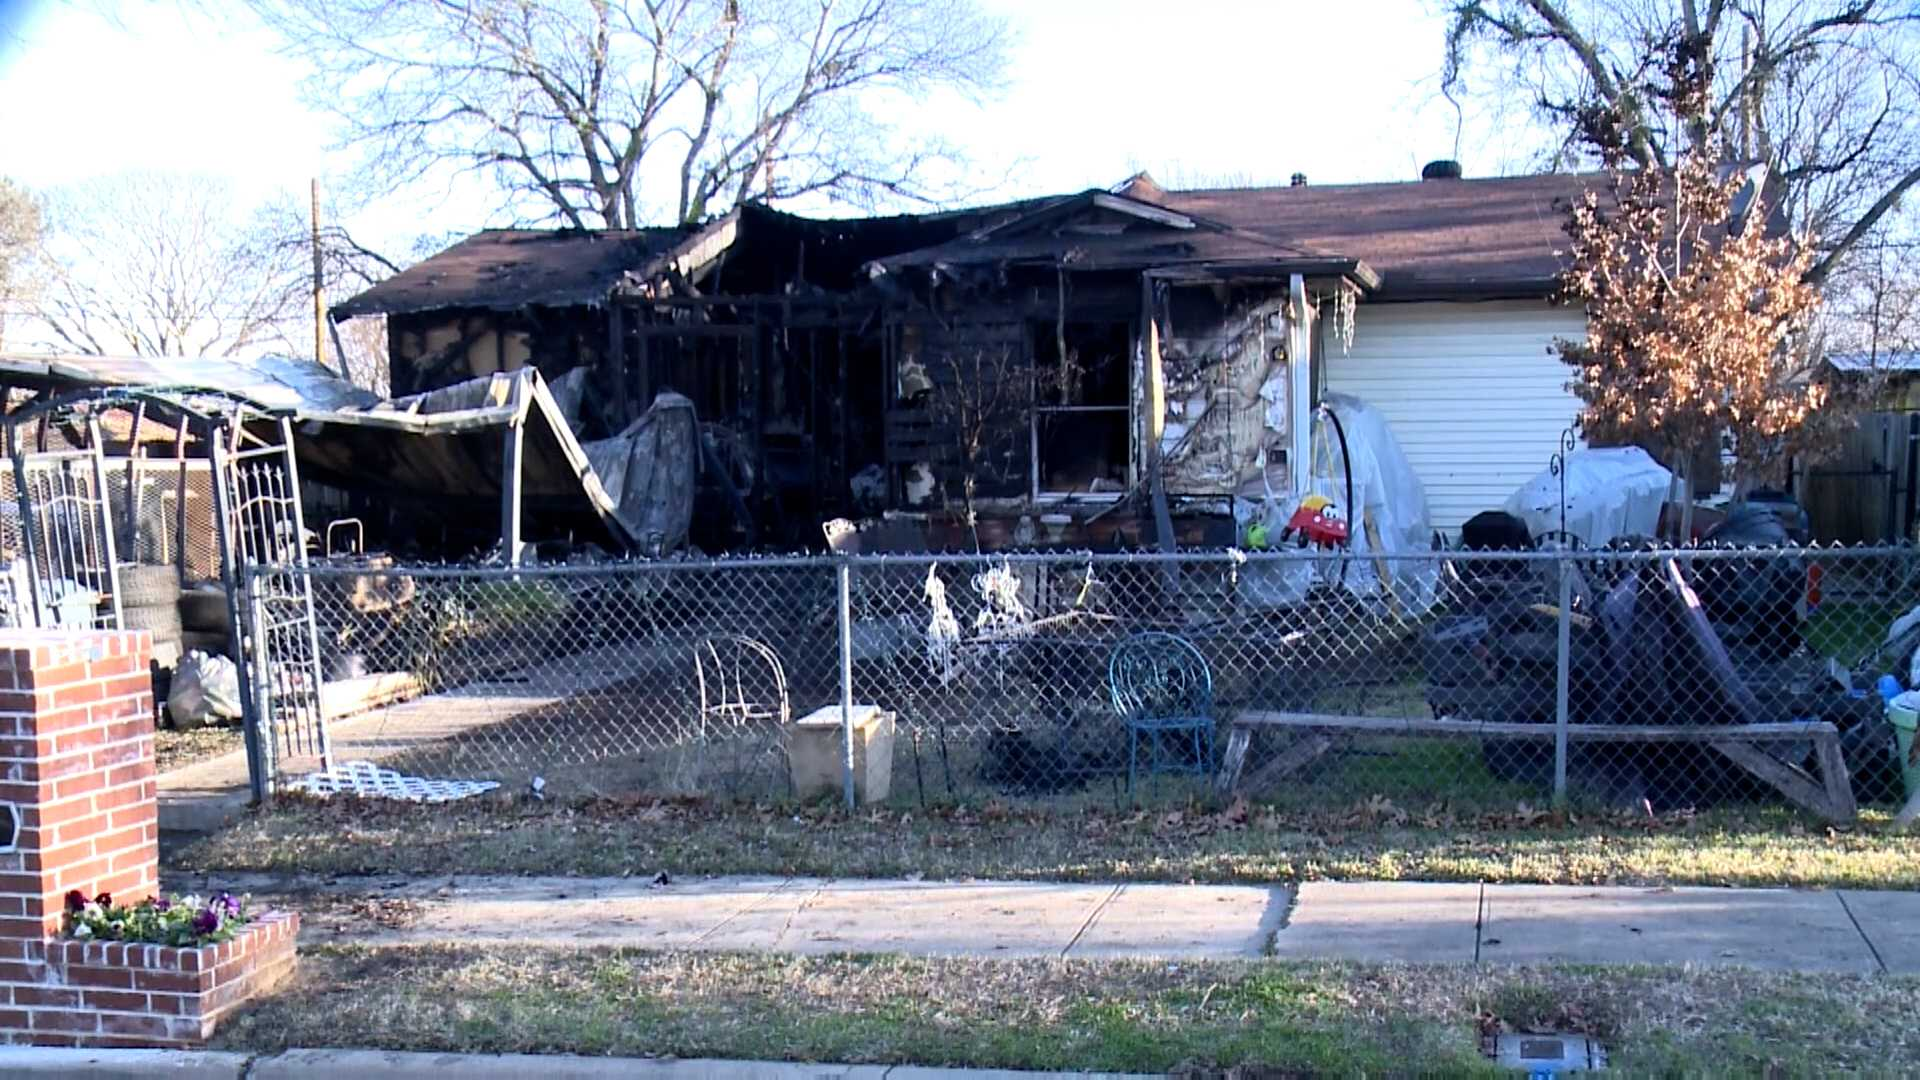 Texas teen saves her family when they lost sense of smell from Covid-19 and didn't realize house was on fire 1